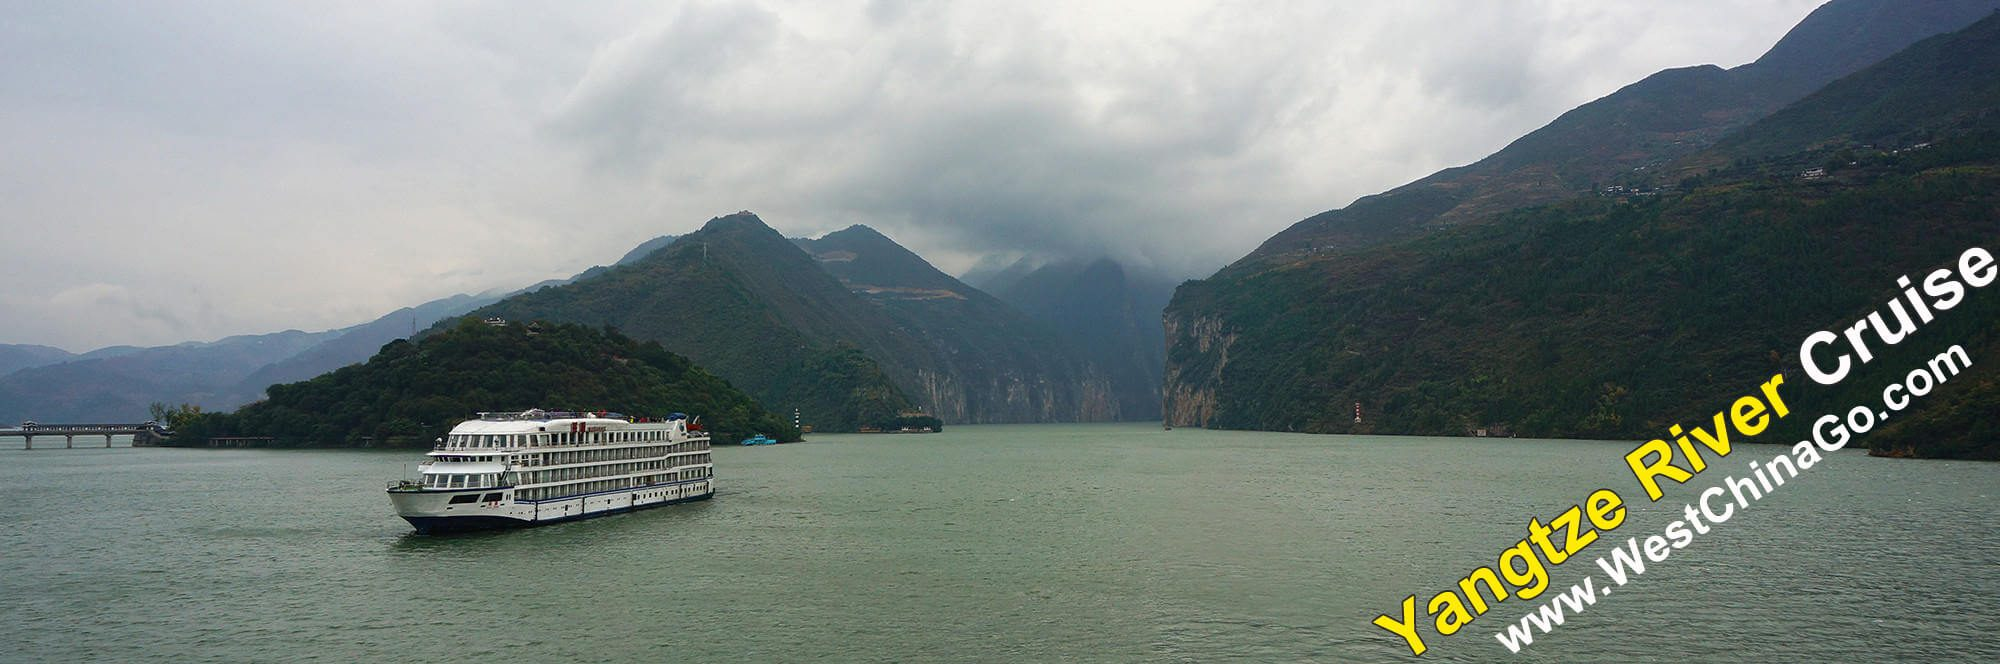 What's the price factor of yangtze river cruise to matter?